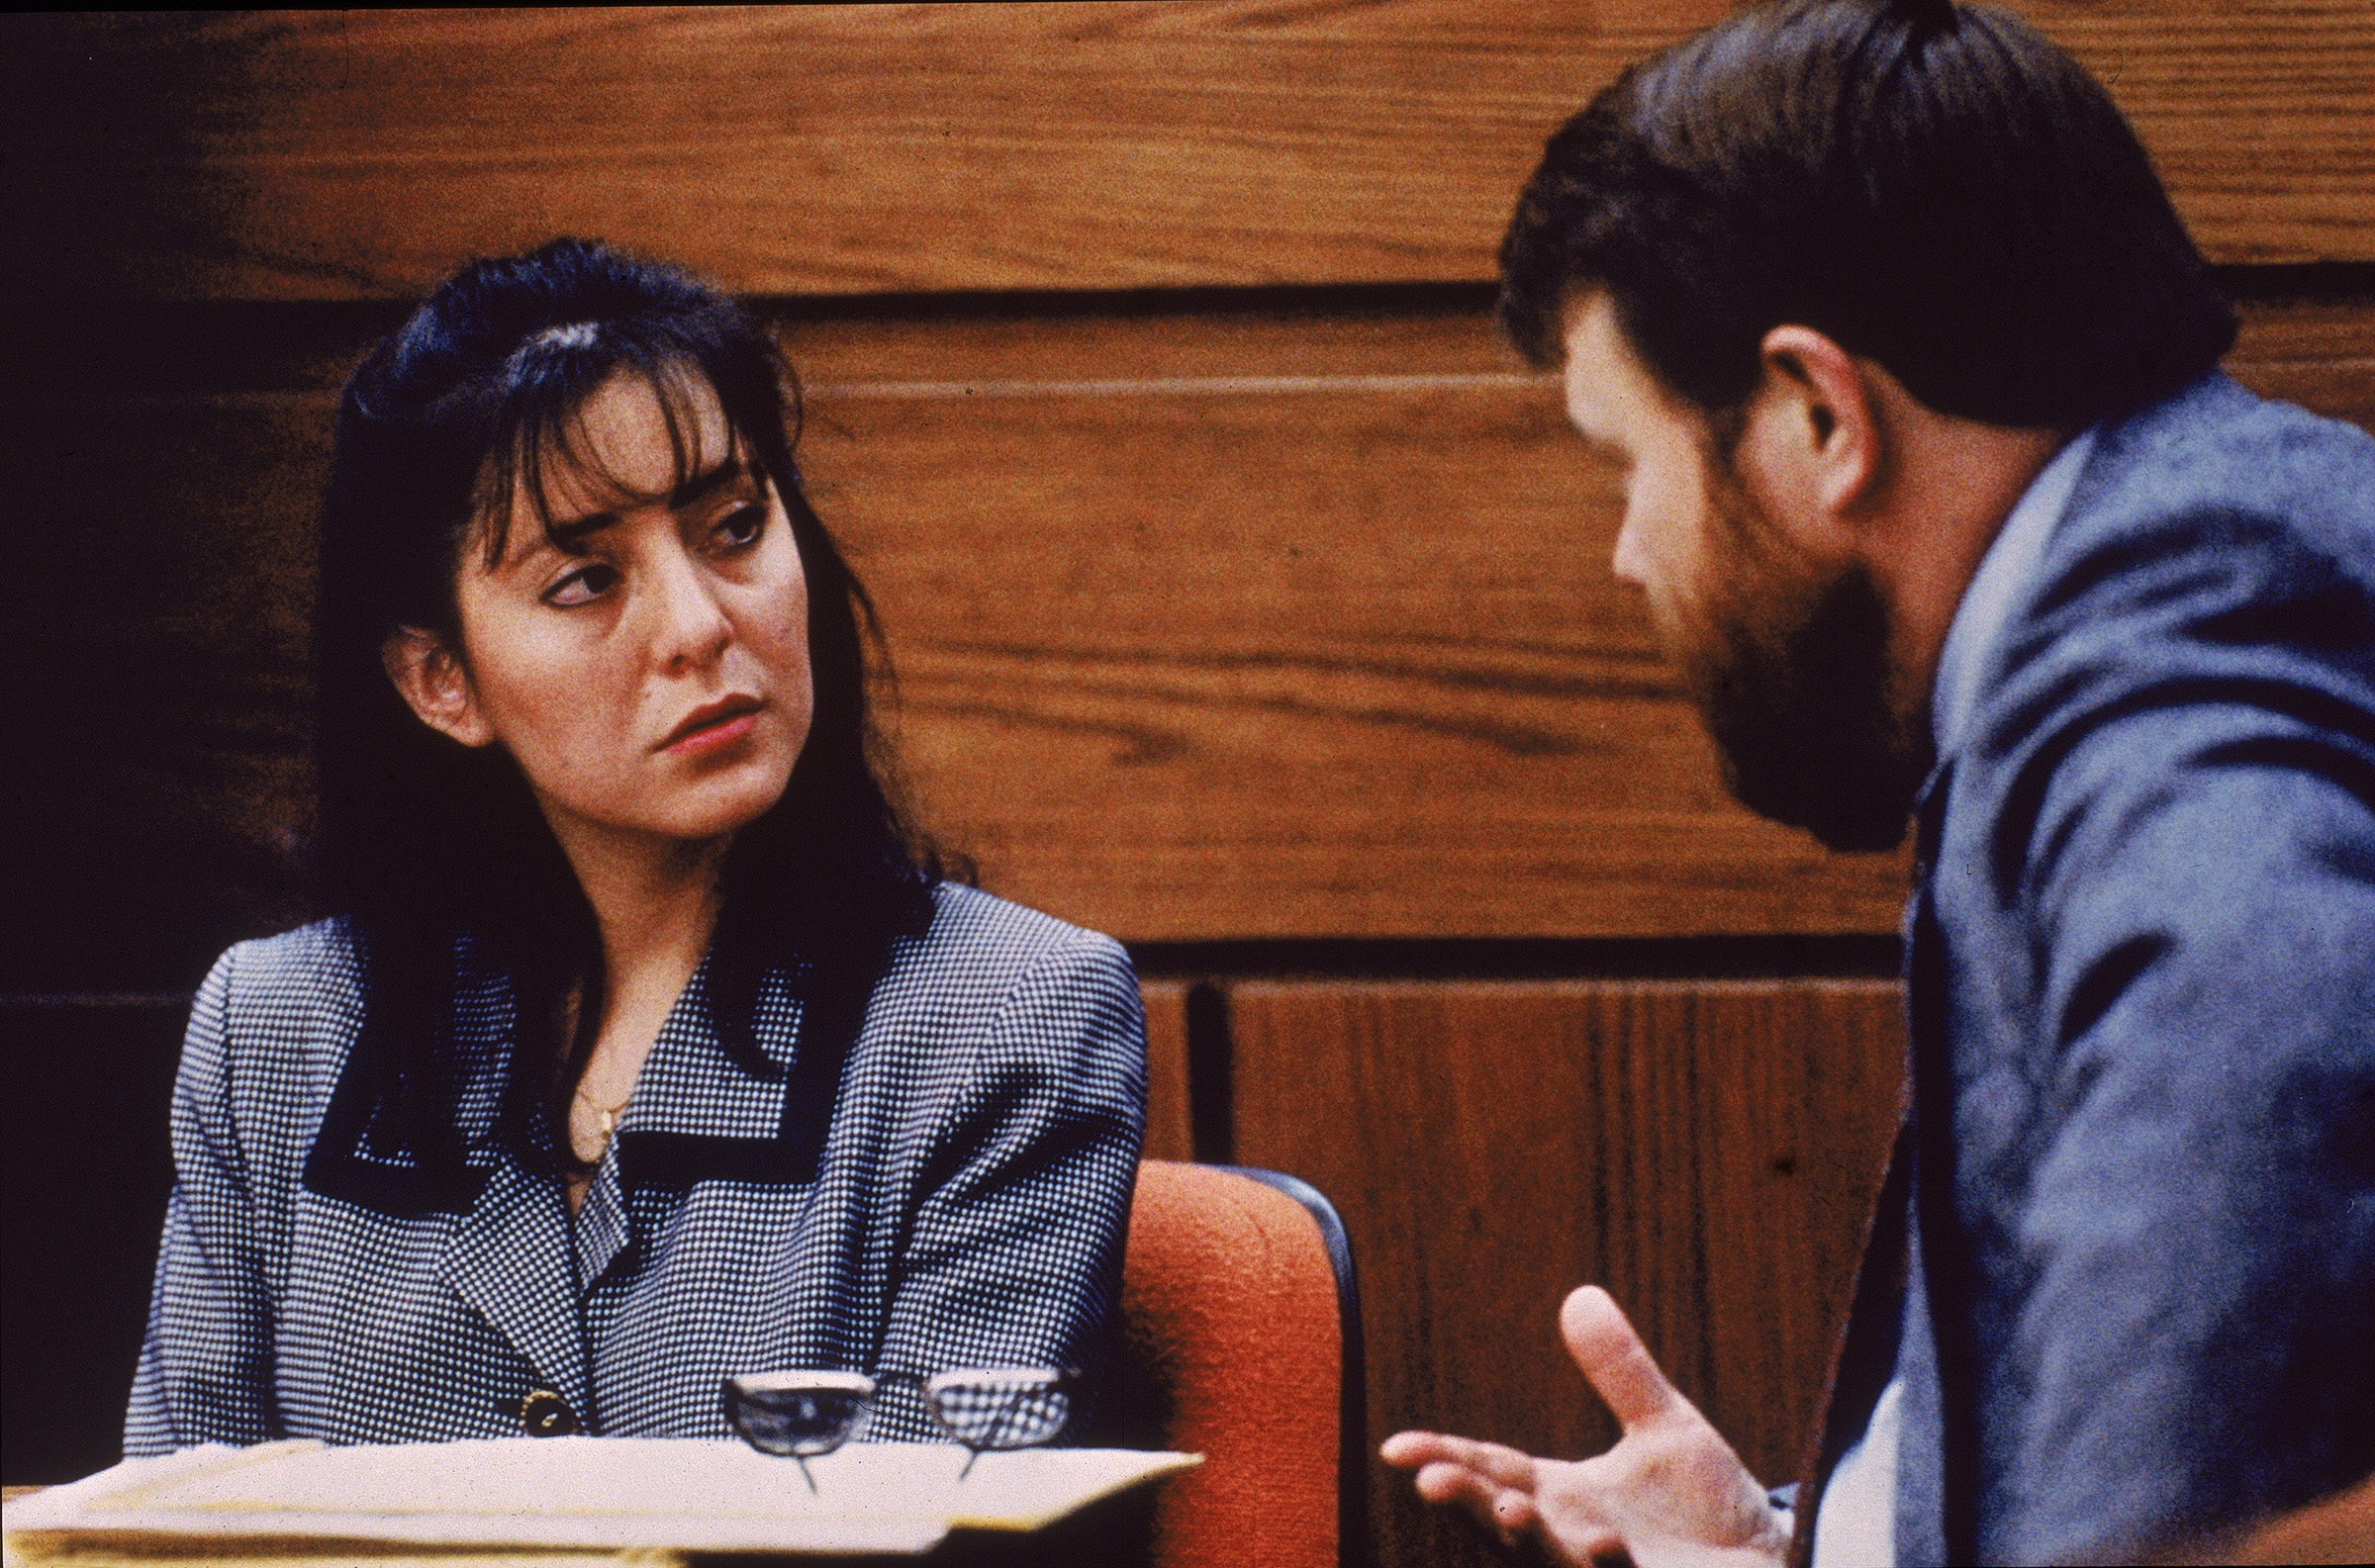 Lorena Bobbitt listens to a lawyer during her trial, Manassas, Virginia, January 1994. Bobbitt was on trial for cutting off her husband's penis; she was acquitted by reason of temporary insanity.